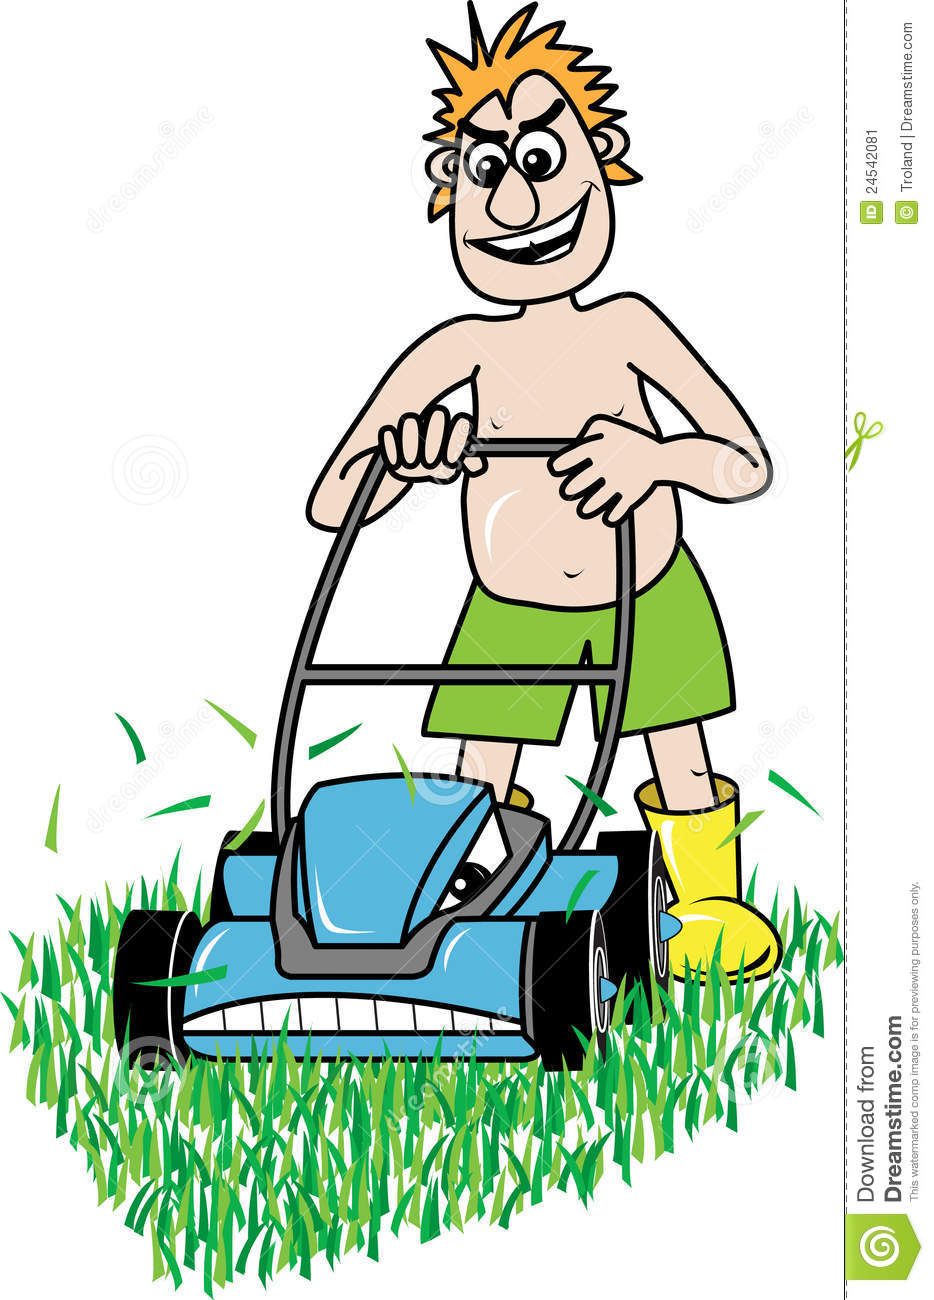 lawn mowing stock image